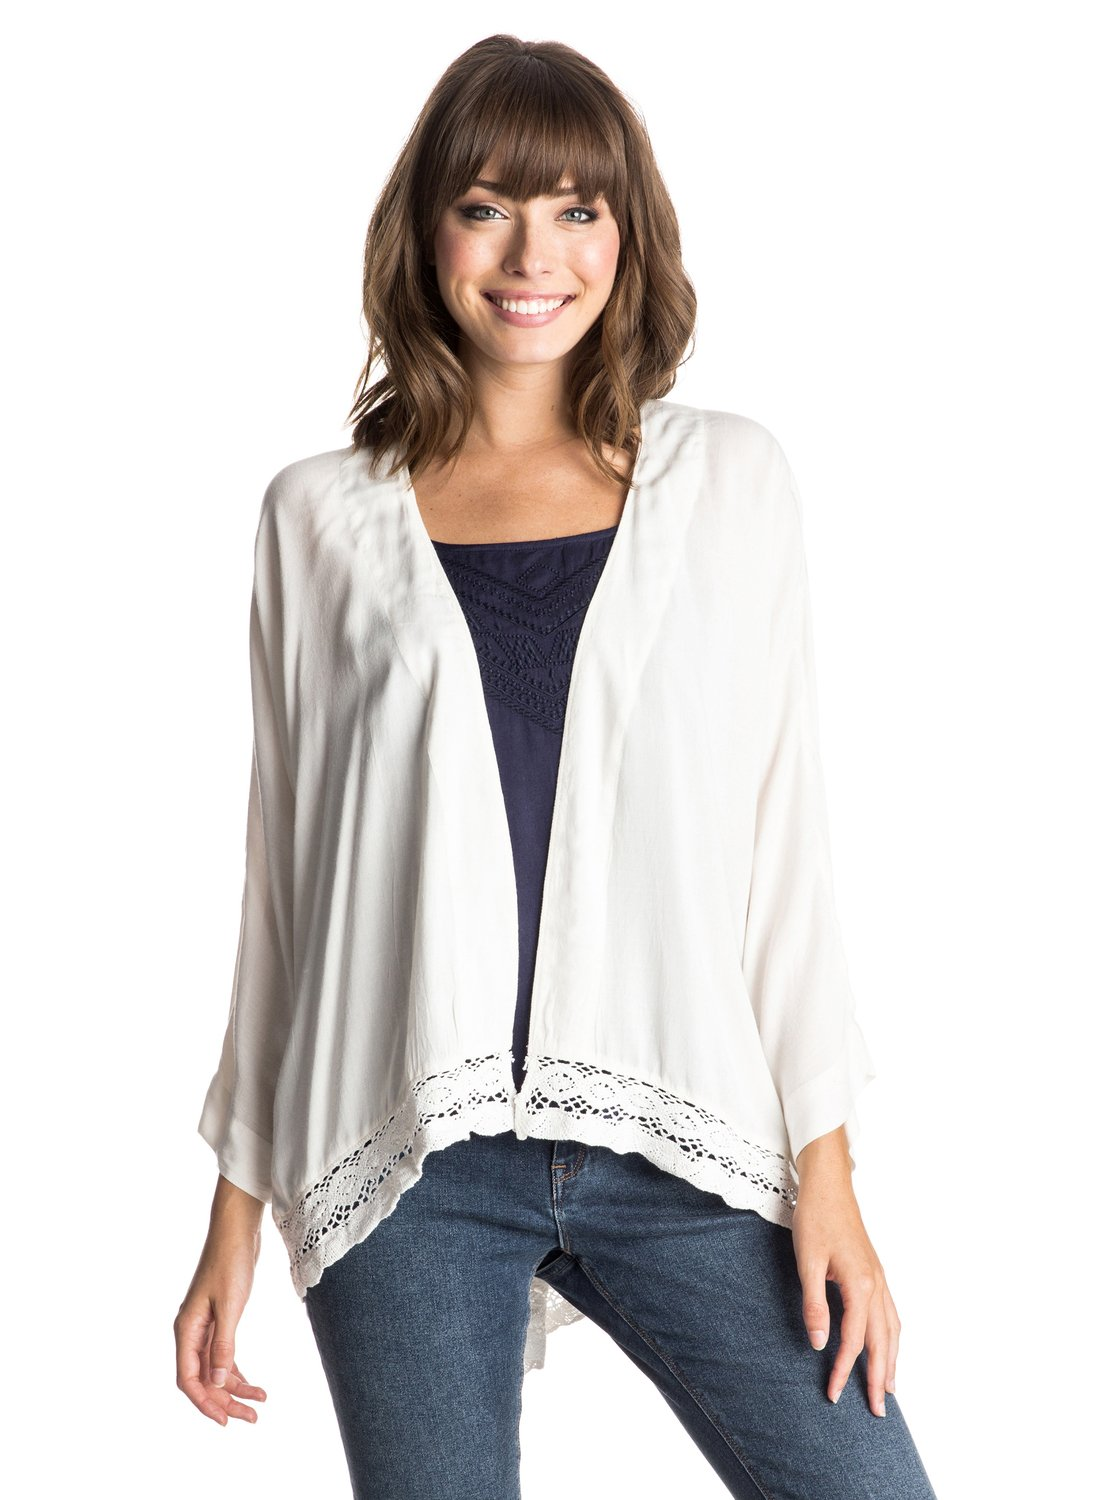 Life Pursuit Kimono Top - Roxy������� ���-������ Life Pursuit �� ROXY. <br>��������������: �� �������������, ������� ����� �� ����, ������� ����� �����. <br>������: 100% �������.<br>